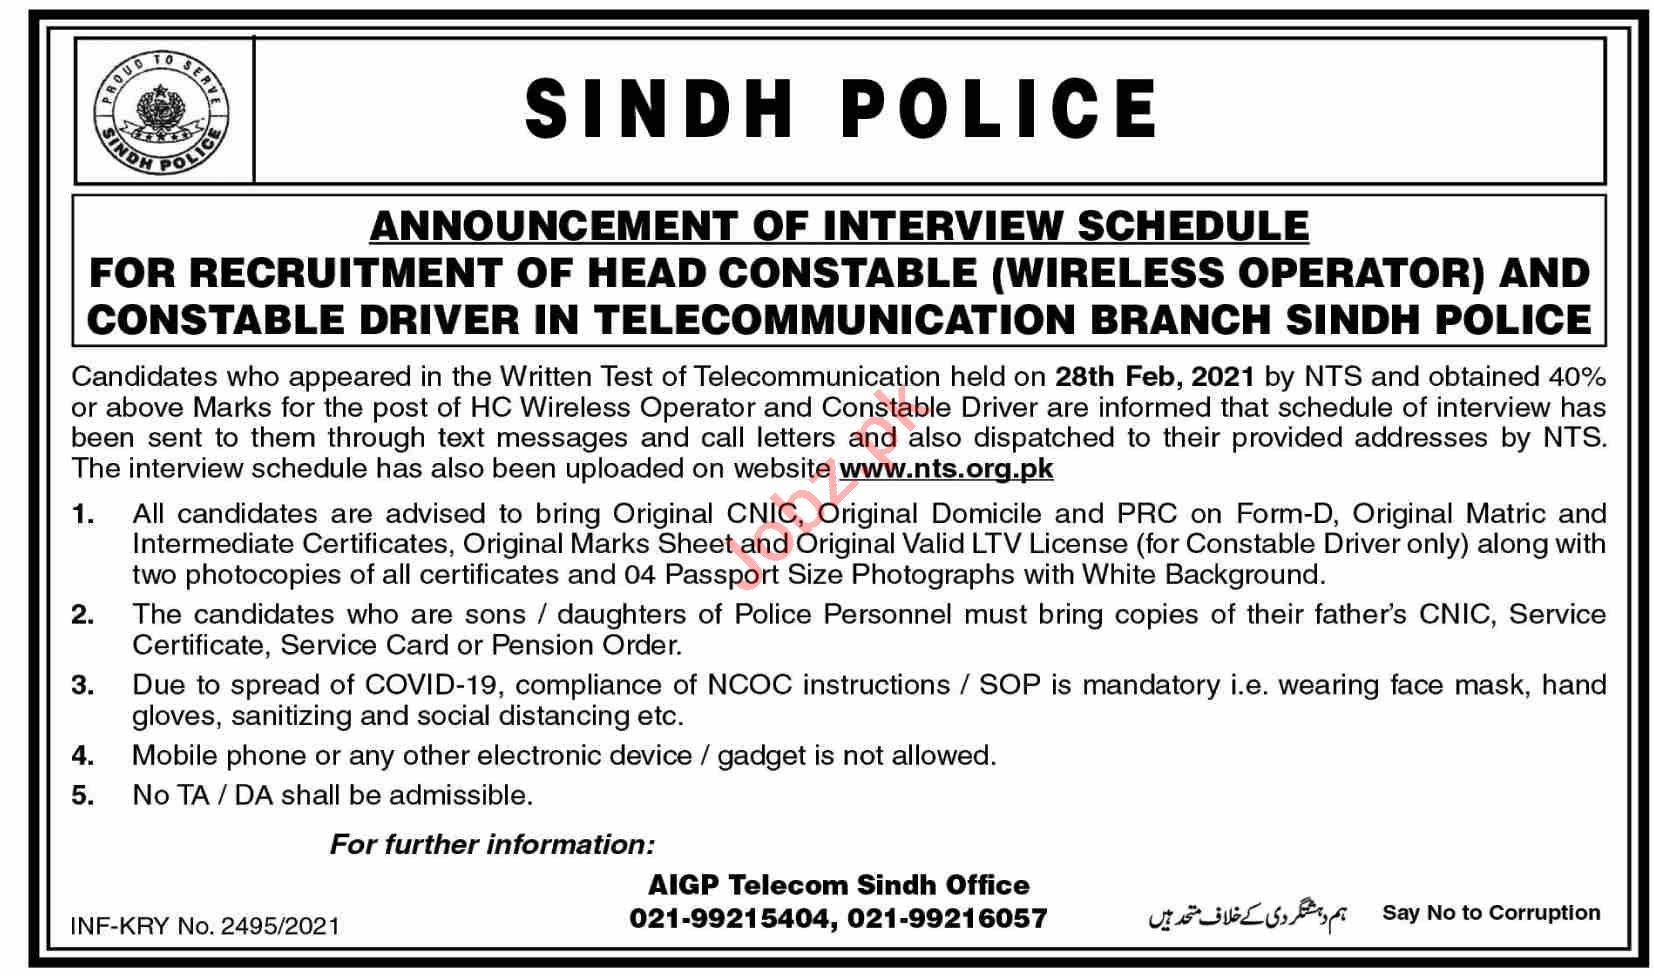 AIGP Telecom Sindh Police Jobs Interview 2021 for Constable